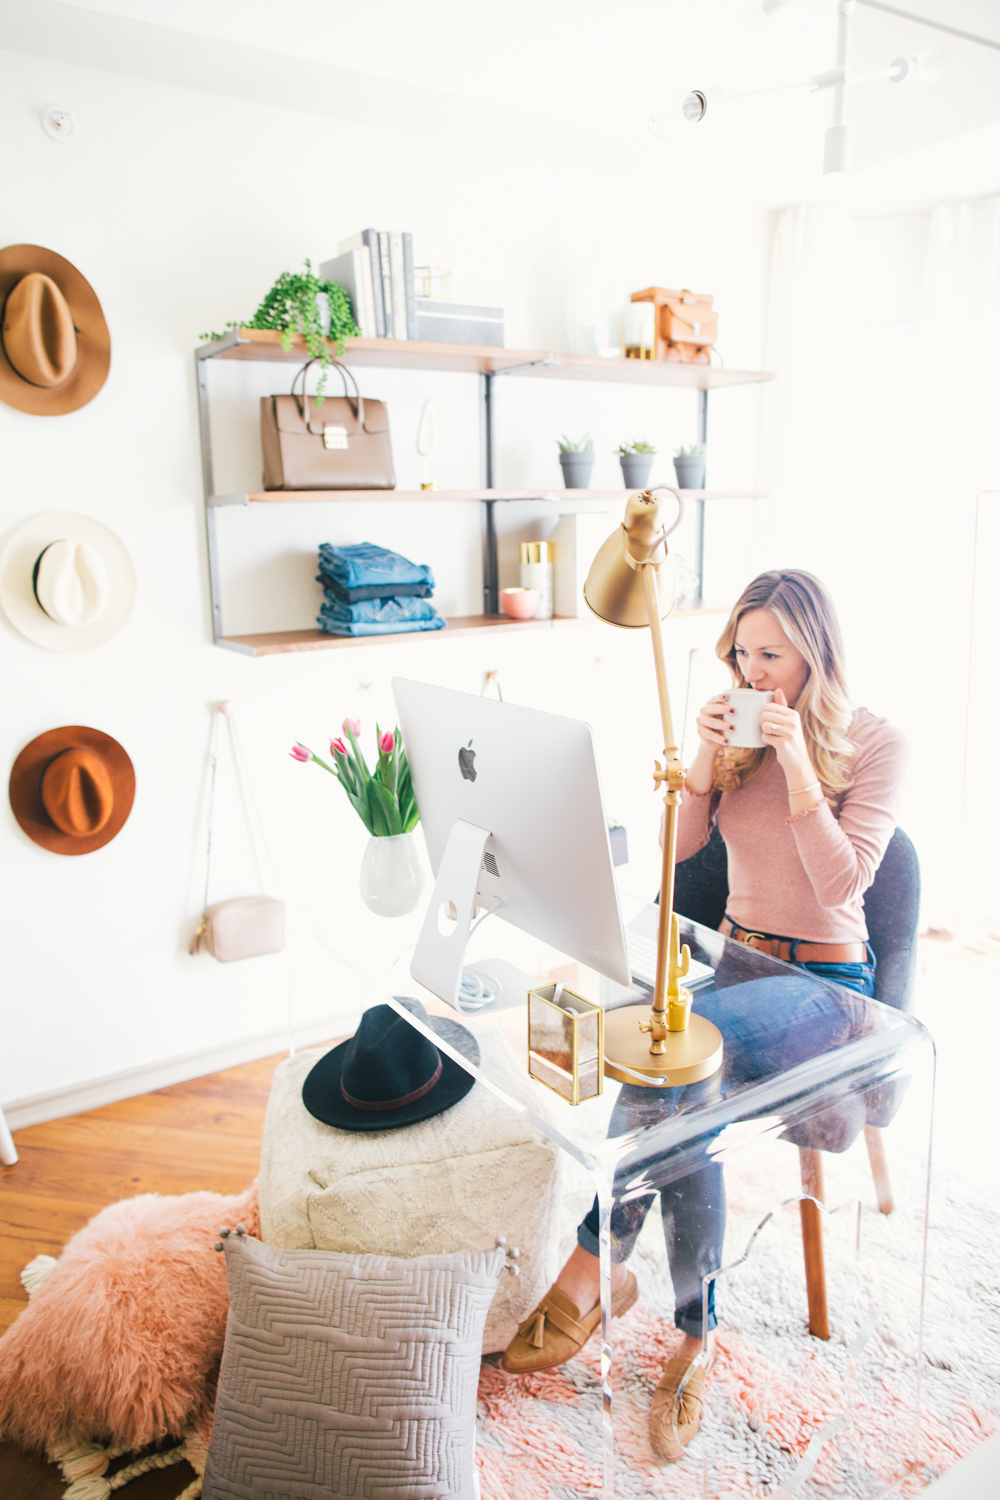 livvyland-blog-olivia-watson-west-elm-home-office-before-after-reveal-pink-grey-cozy-chic-white-airy-girly-austin-texas-fashion-blogger-20